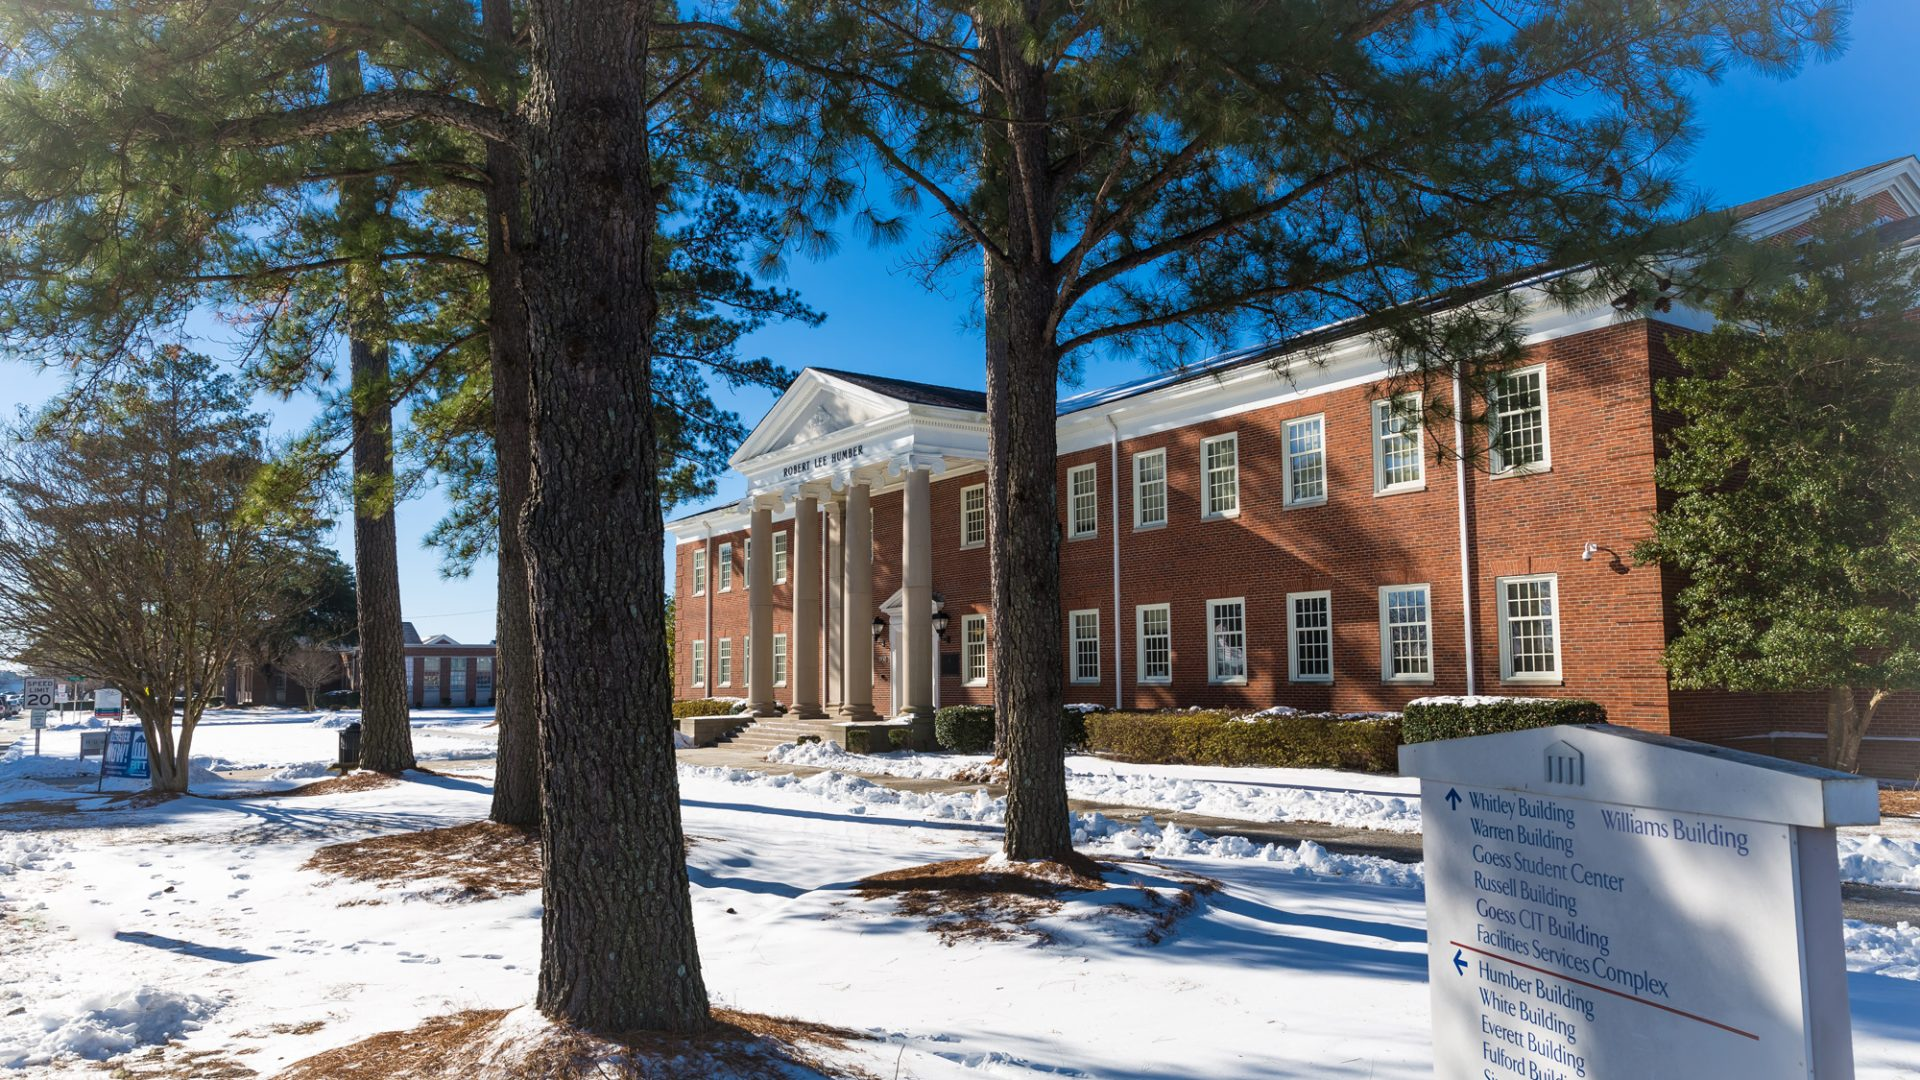 Snow covers the ground in front of the Robert Lee Humber Building on a sunny, clear winter day.